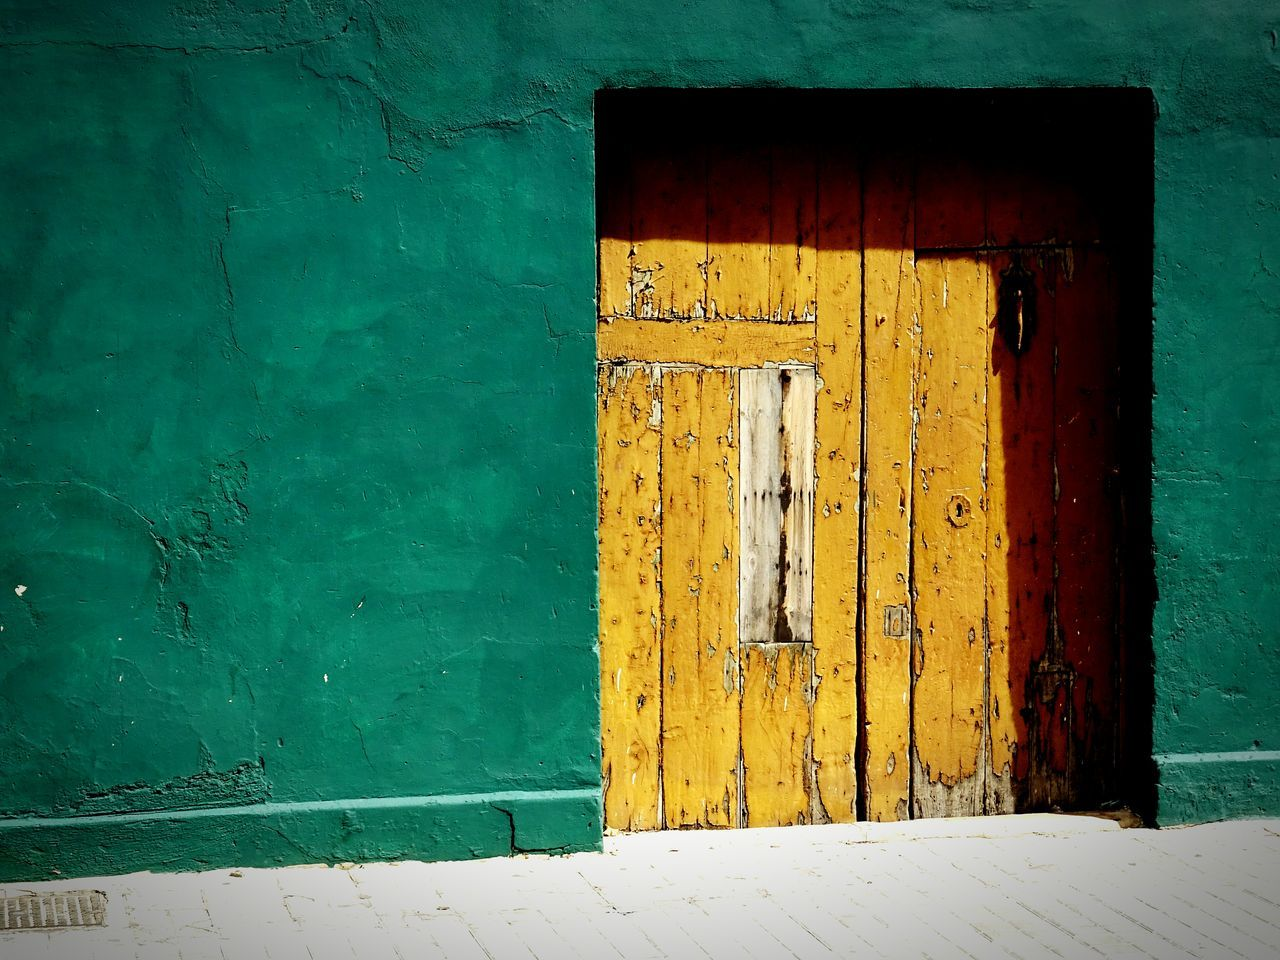 Door Architecture Built Structure Building Exterior Close-up Day No People Outdoors Minimalist Architecture The City Light Green Wall Yellow Door Old Town Old Door Sunlight And Shadow